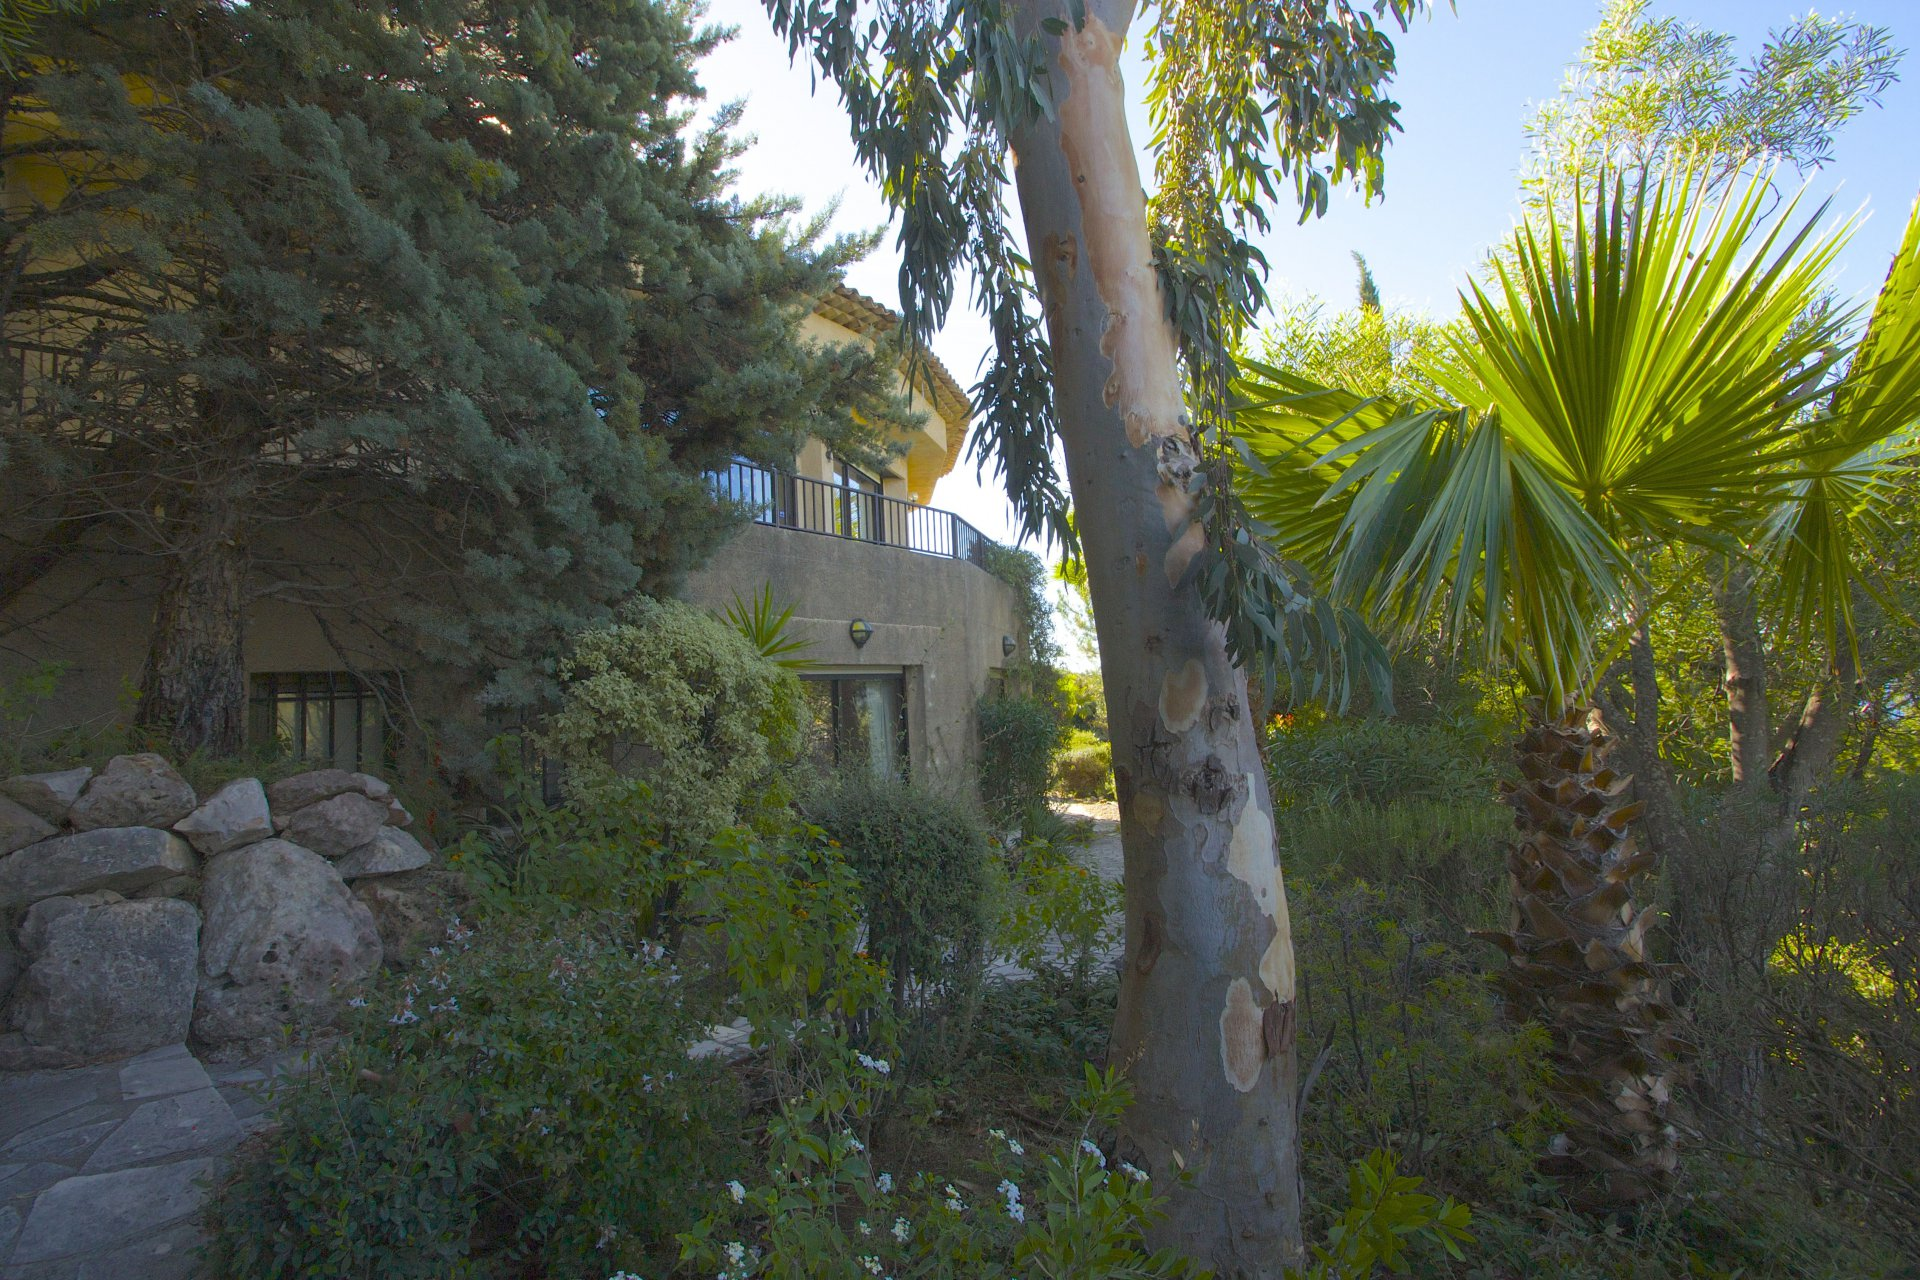 Villa with lots of privacy | Bord du mer | SOUTH rock of Theoule-sur-Mer